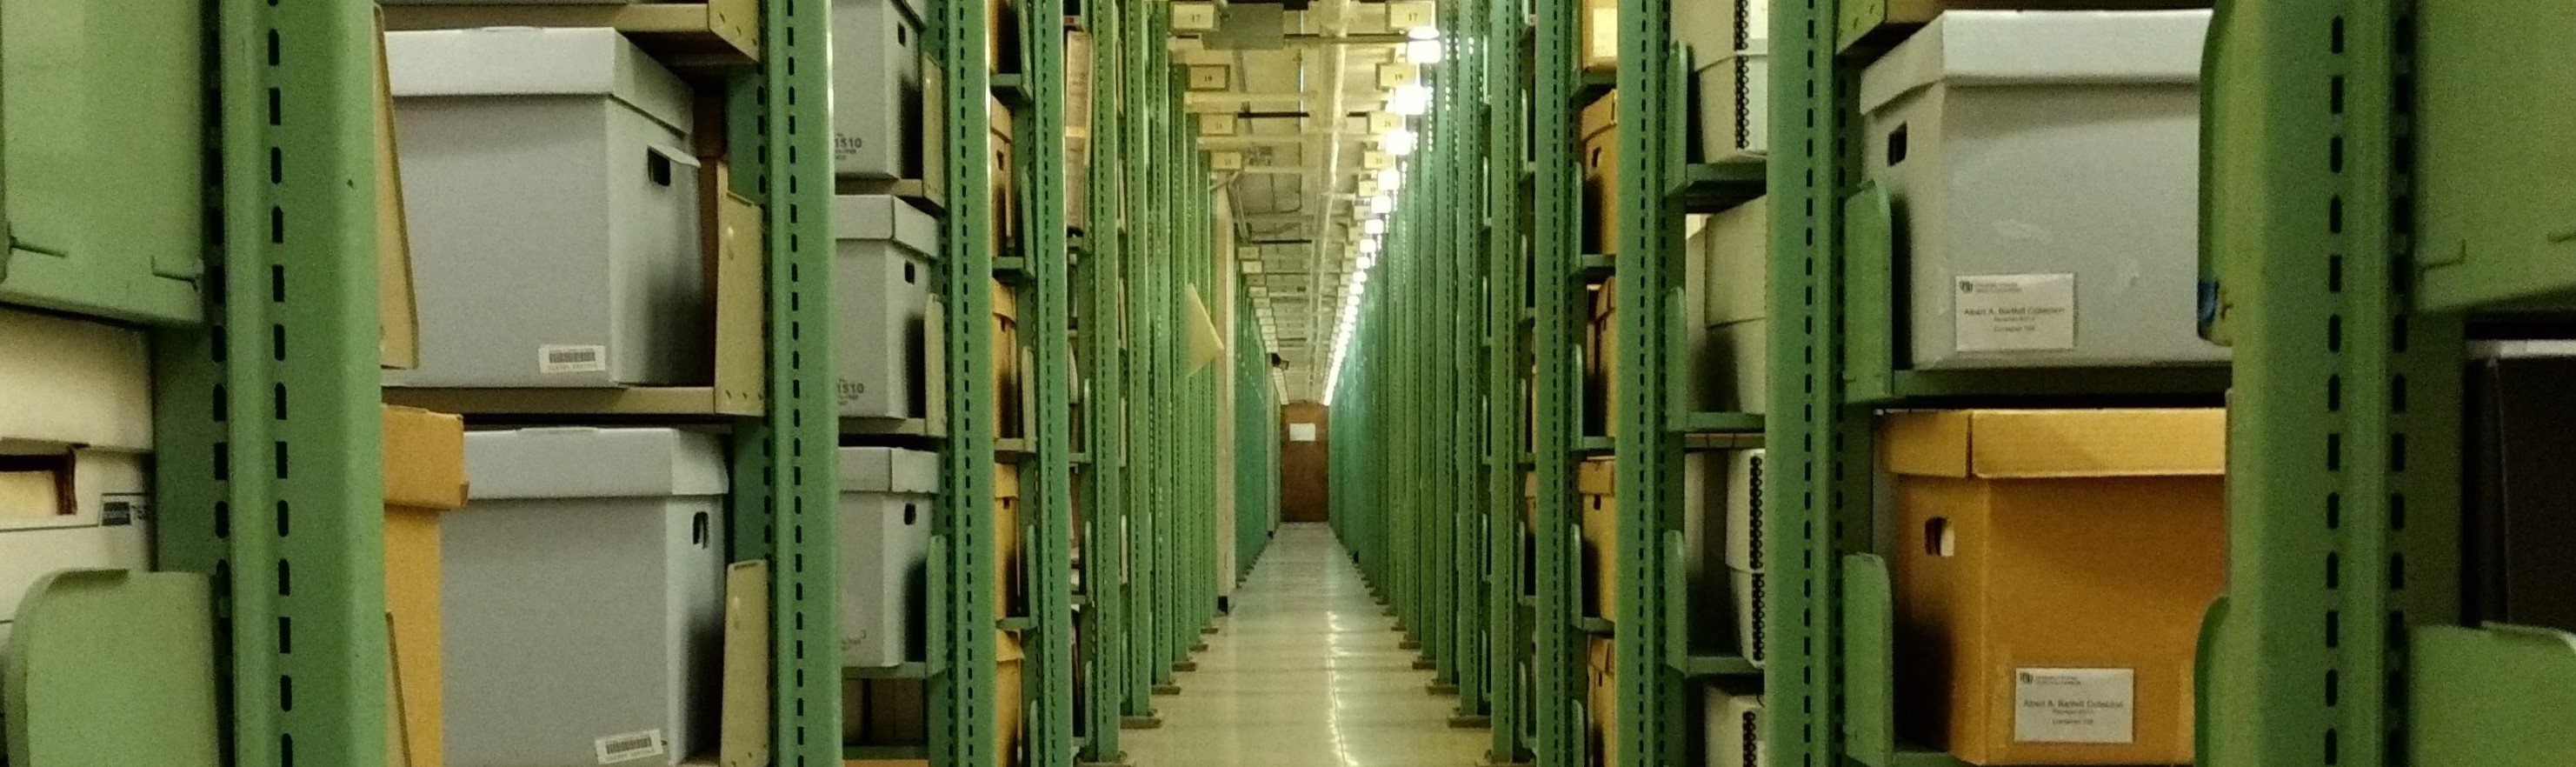 Photograph of CU Boulder Libraries archives stacks, long aisle of green metal shelves filled with labeled cardboard boxes